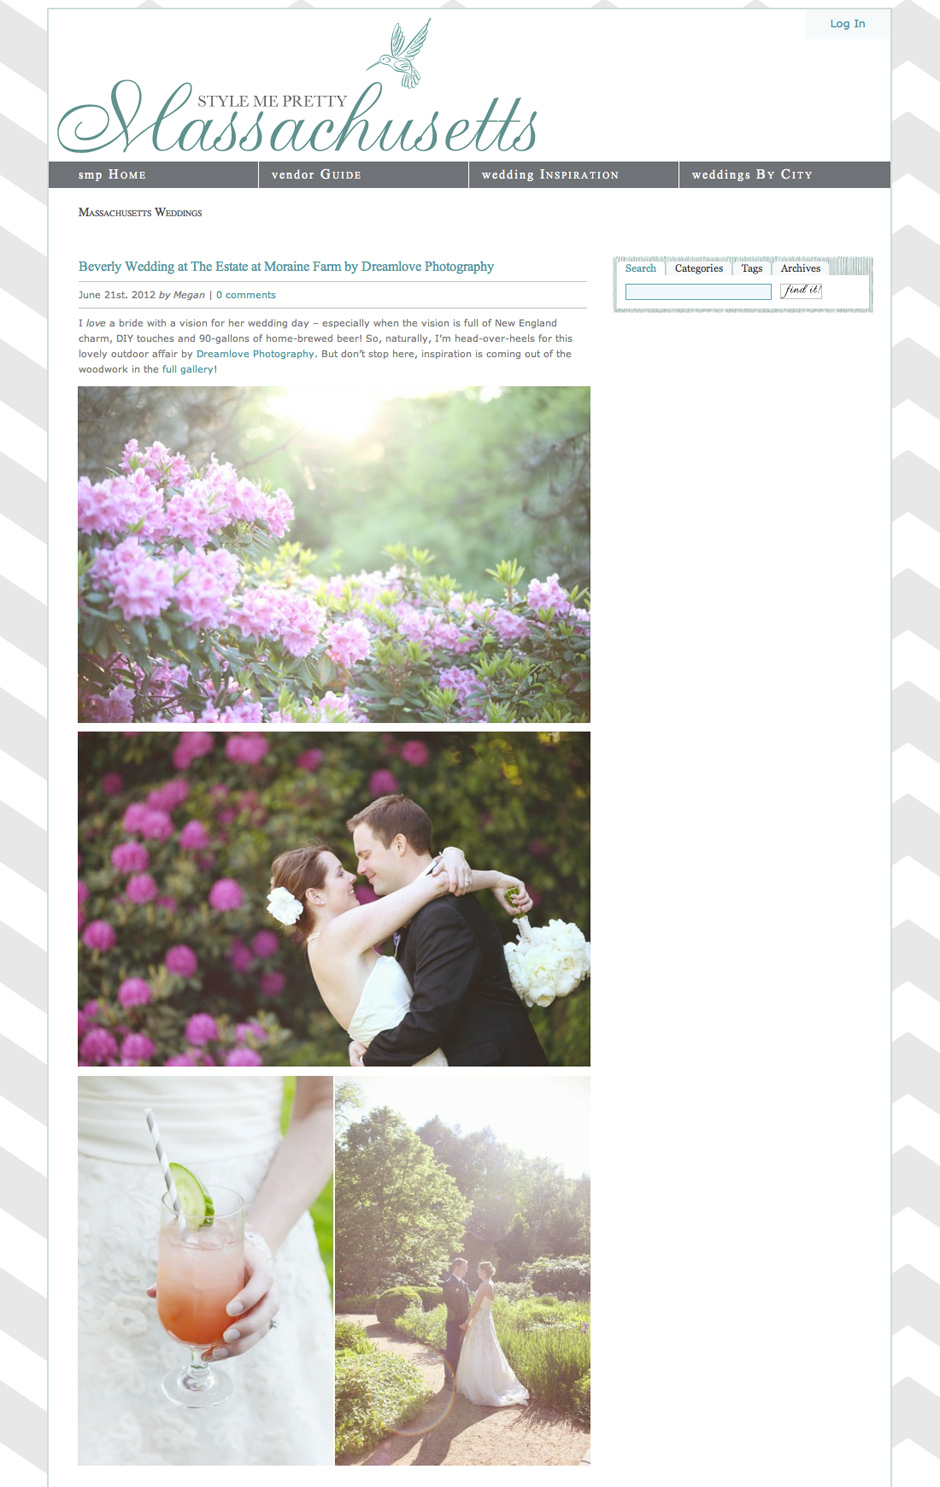 moraine farm diy wedding smp Featured   Style Me Pretty   Rustic Moraine Farm Wedding in Beverly, MA